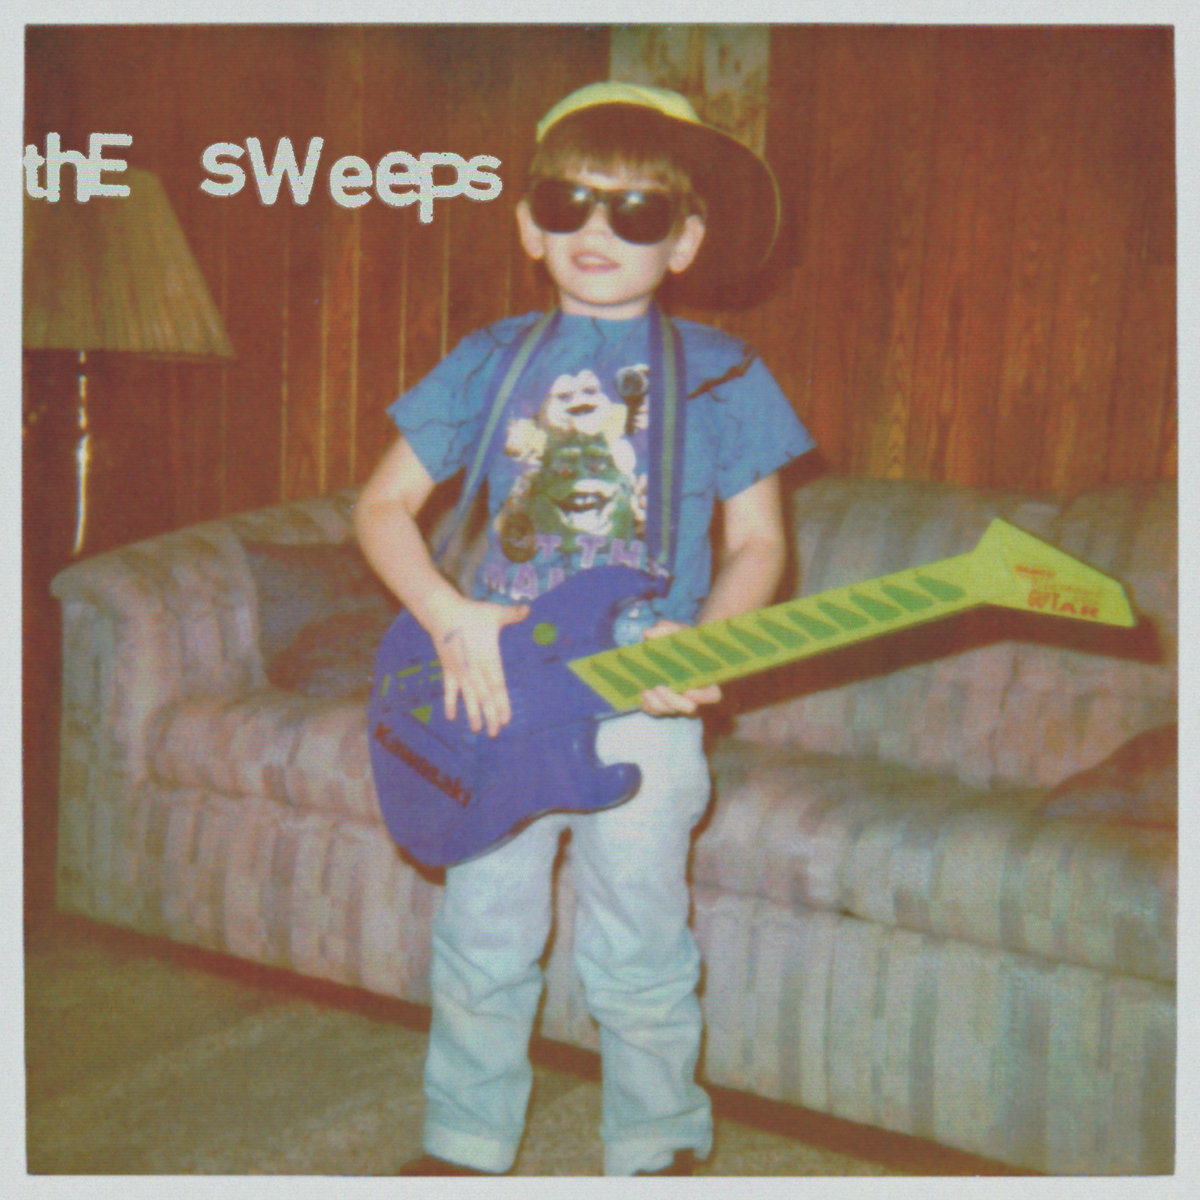 The Sweeps – Self-titled